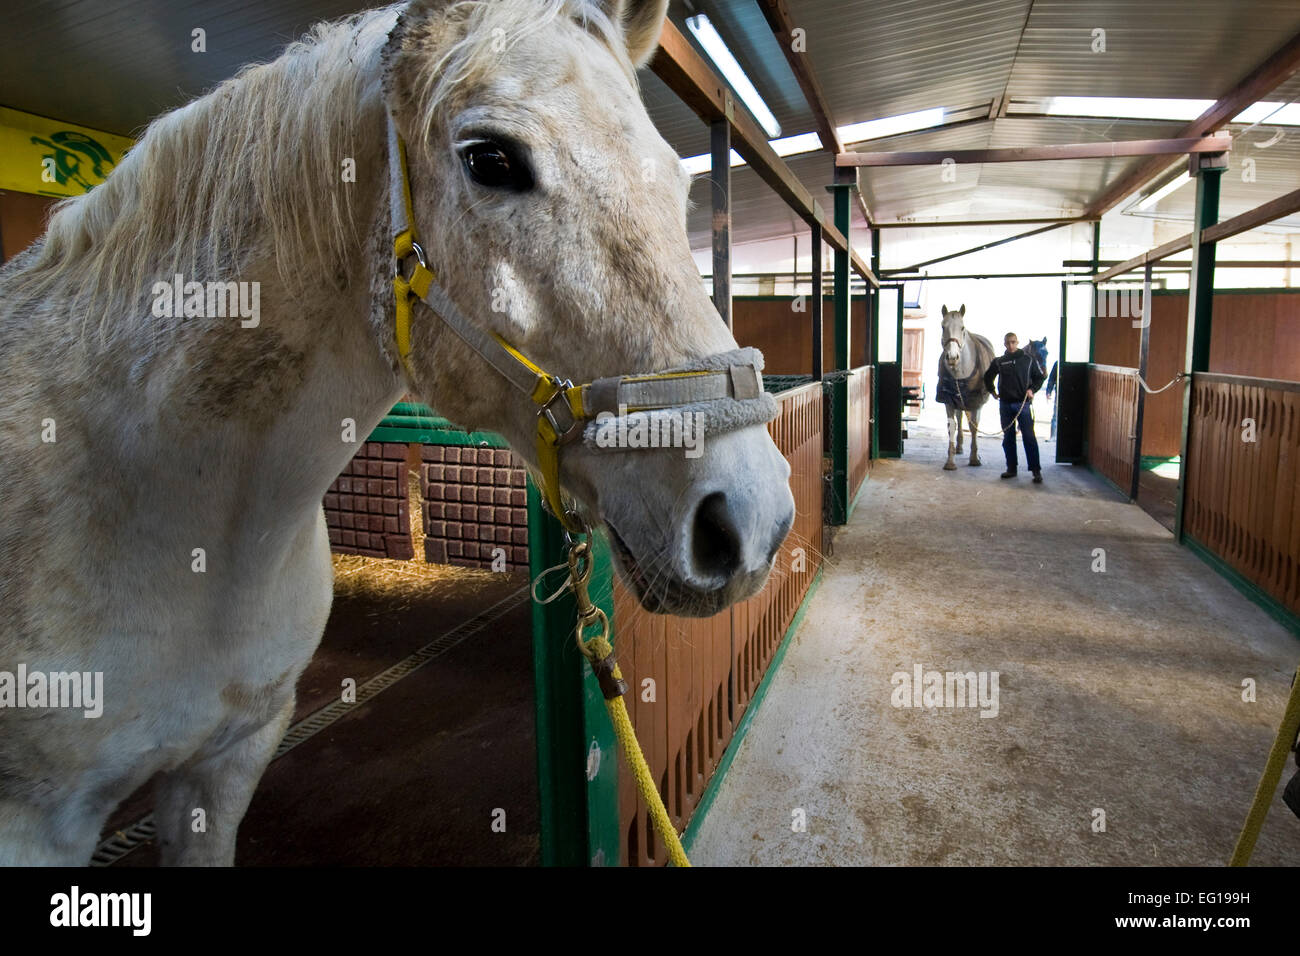 Italy, Bollate prison, riding horses - Stock Image